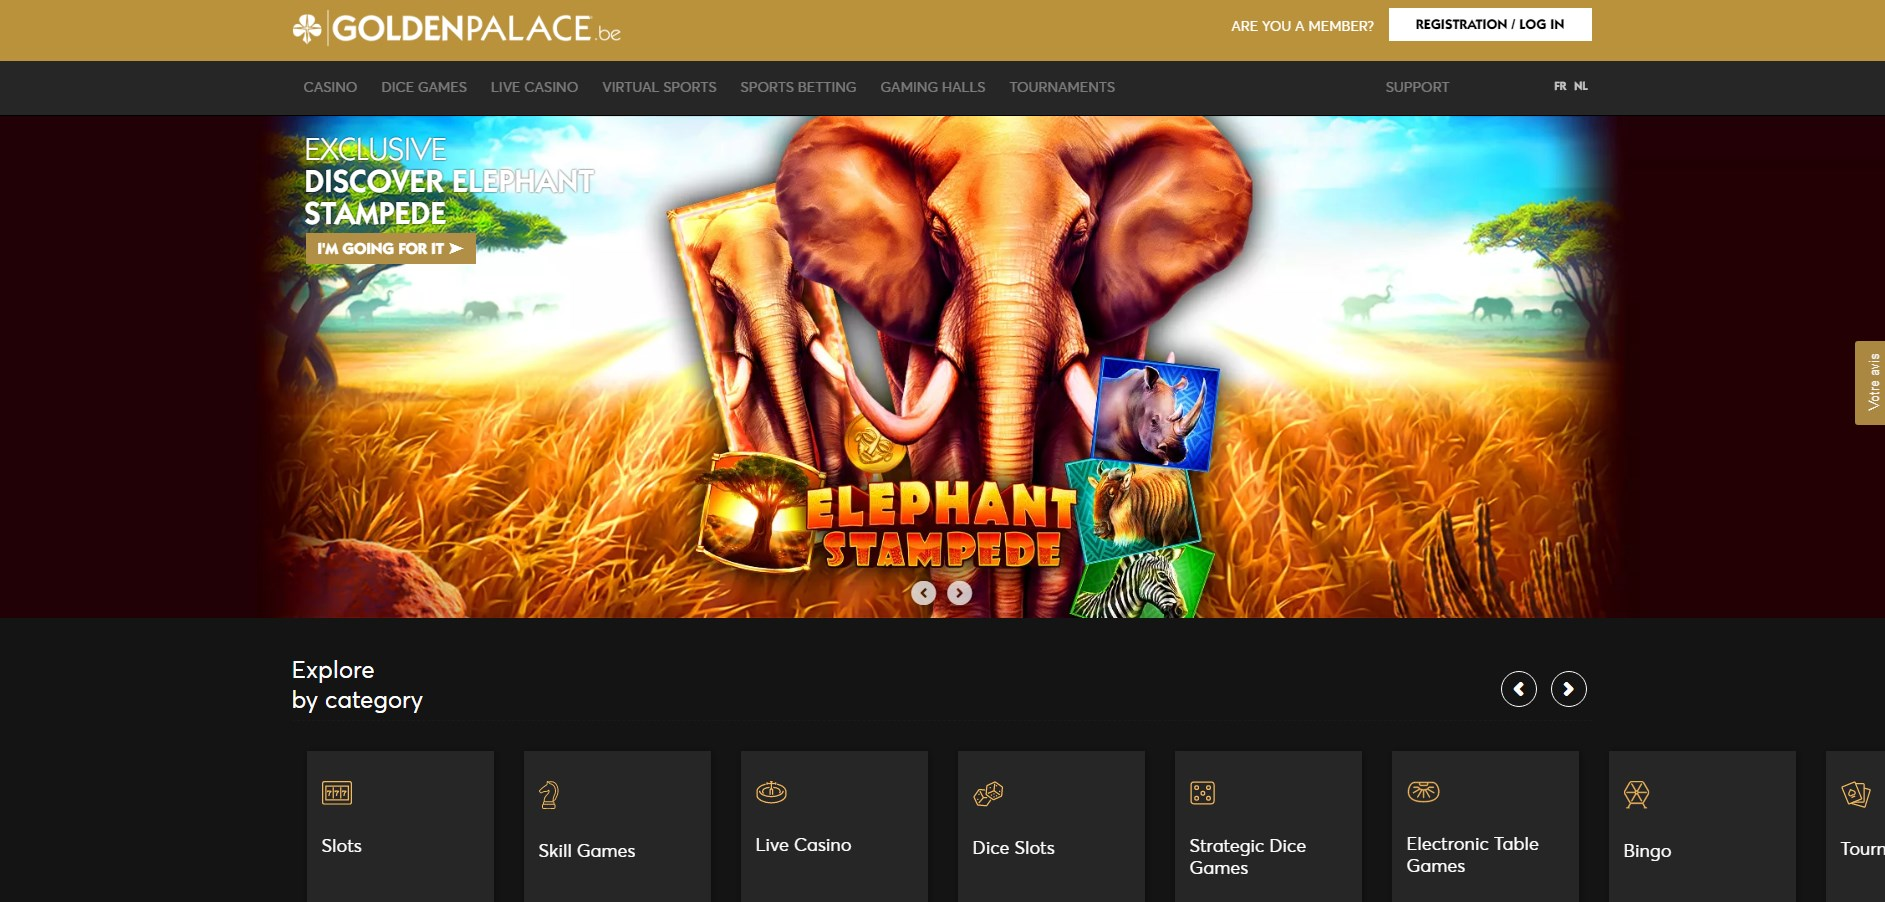 Golden Palace (BE) Casino Review